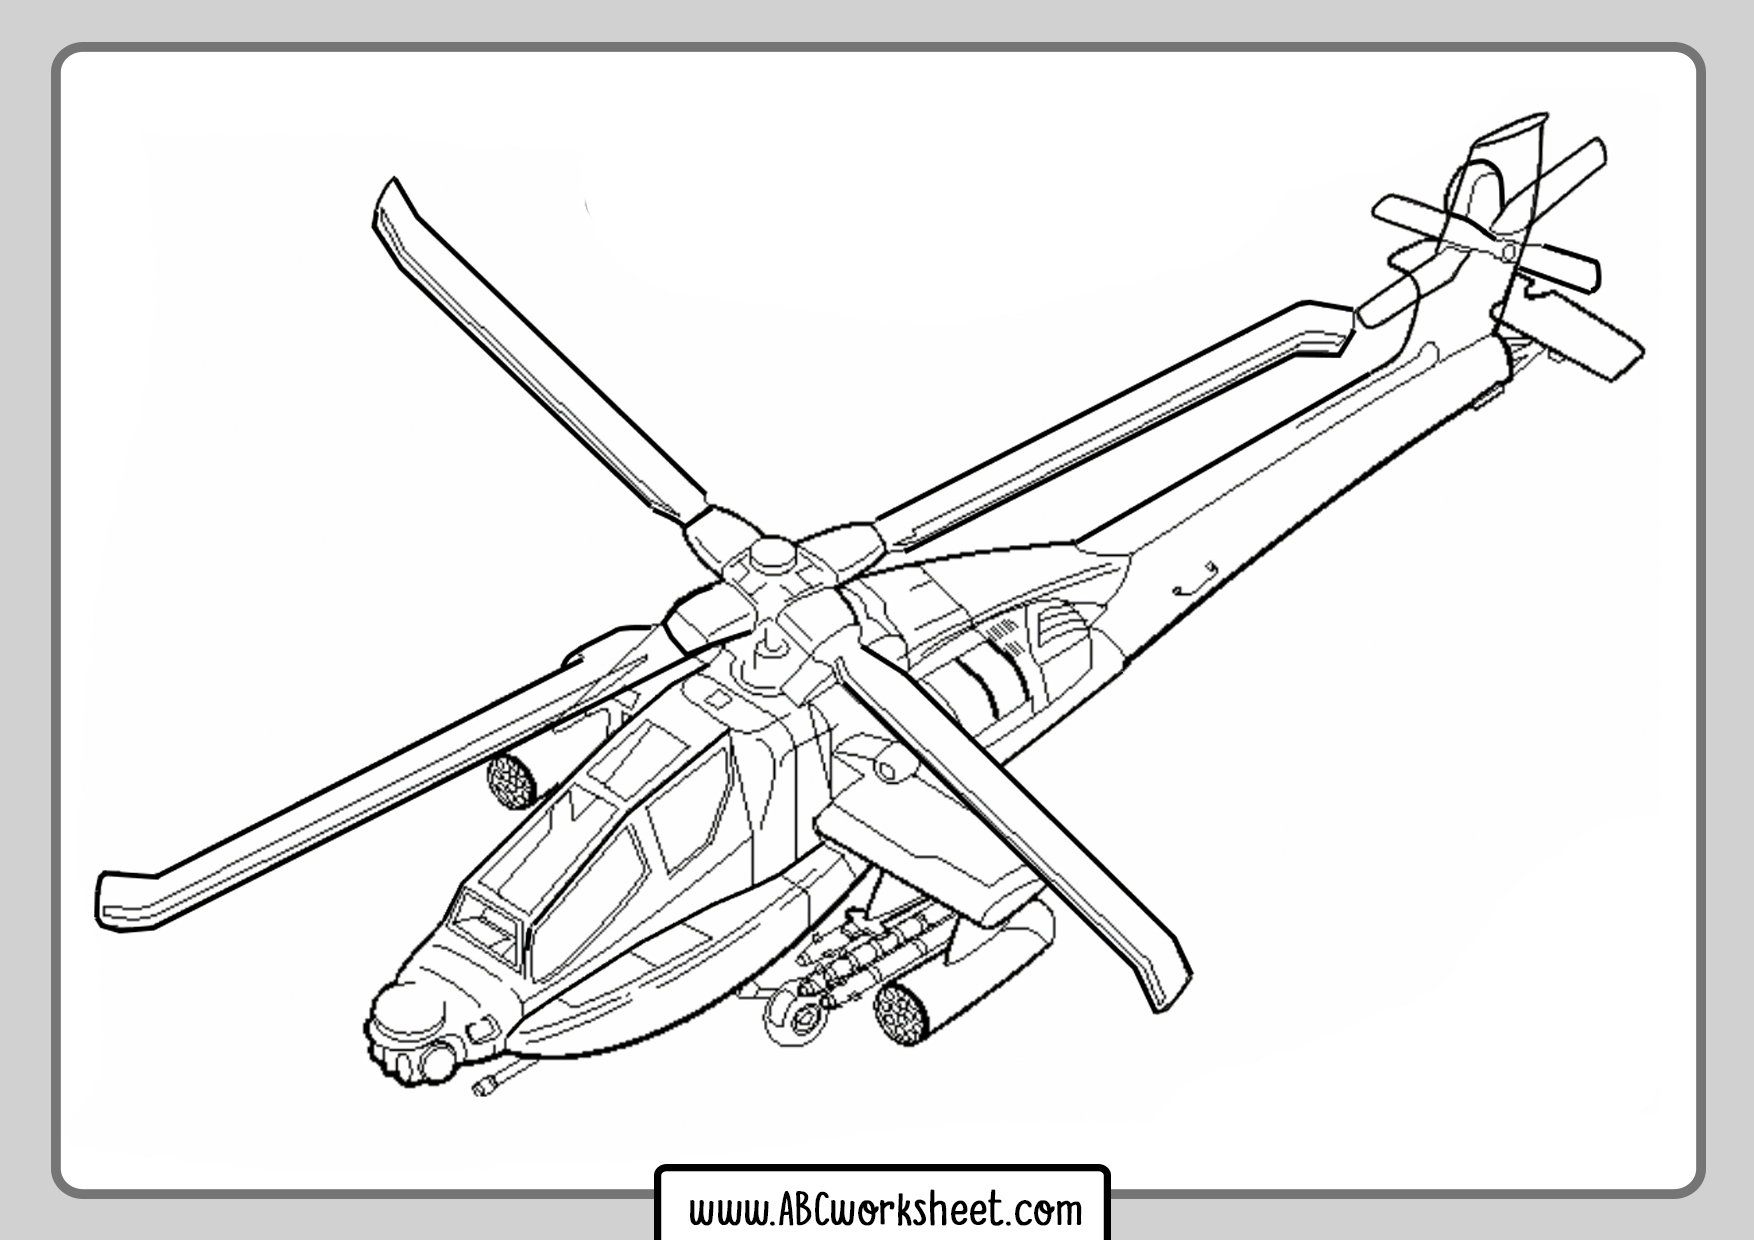 Helicopter Coloring Books